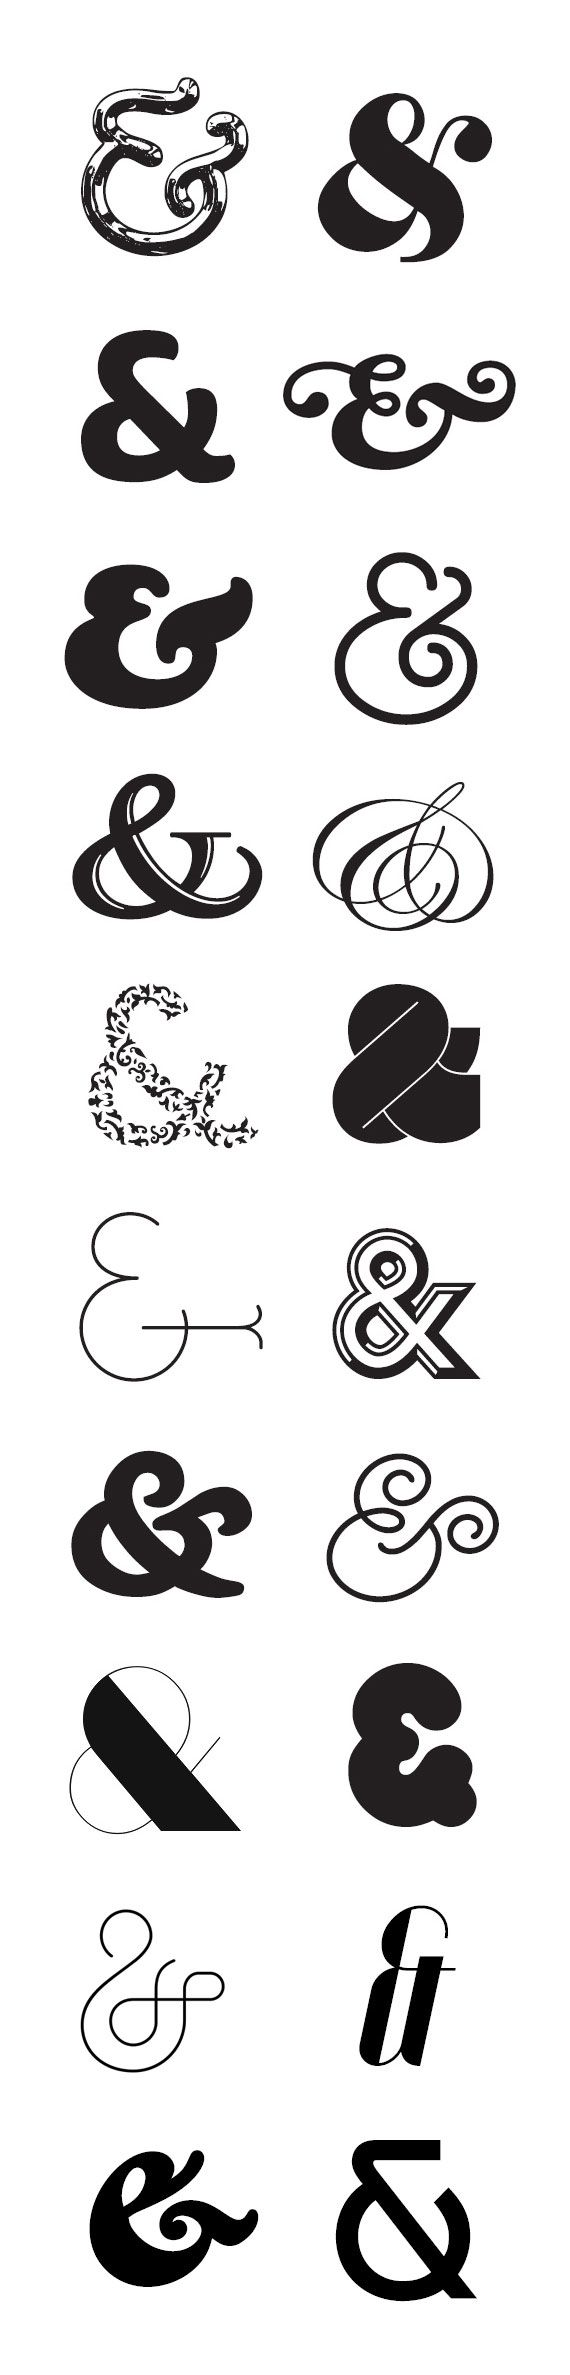 ampersands I love finding stuff like this so I can use it in my art in the future :)